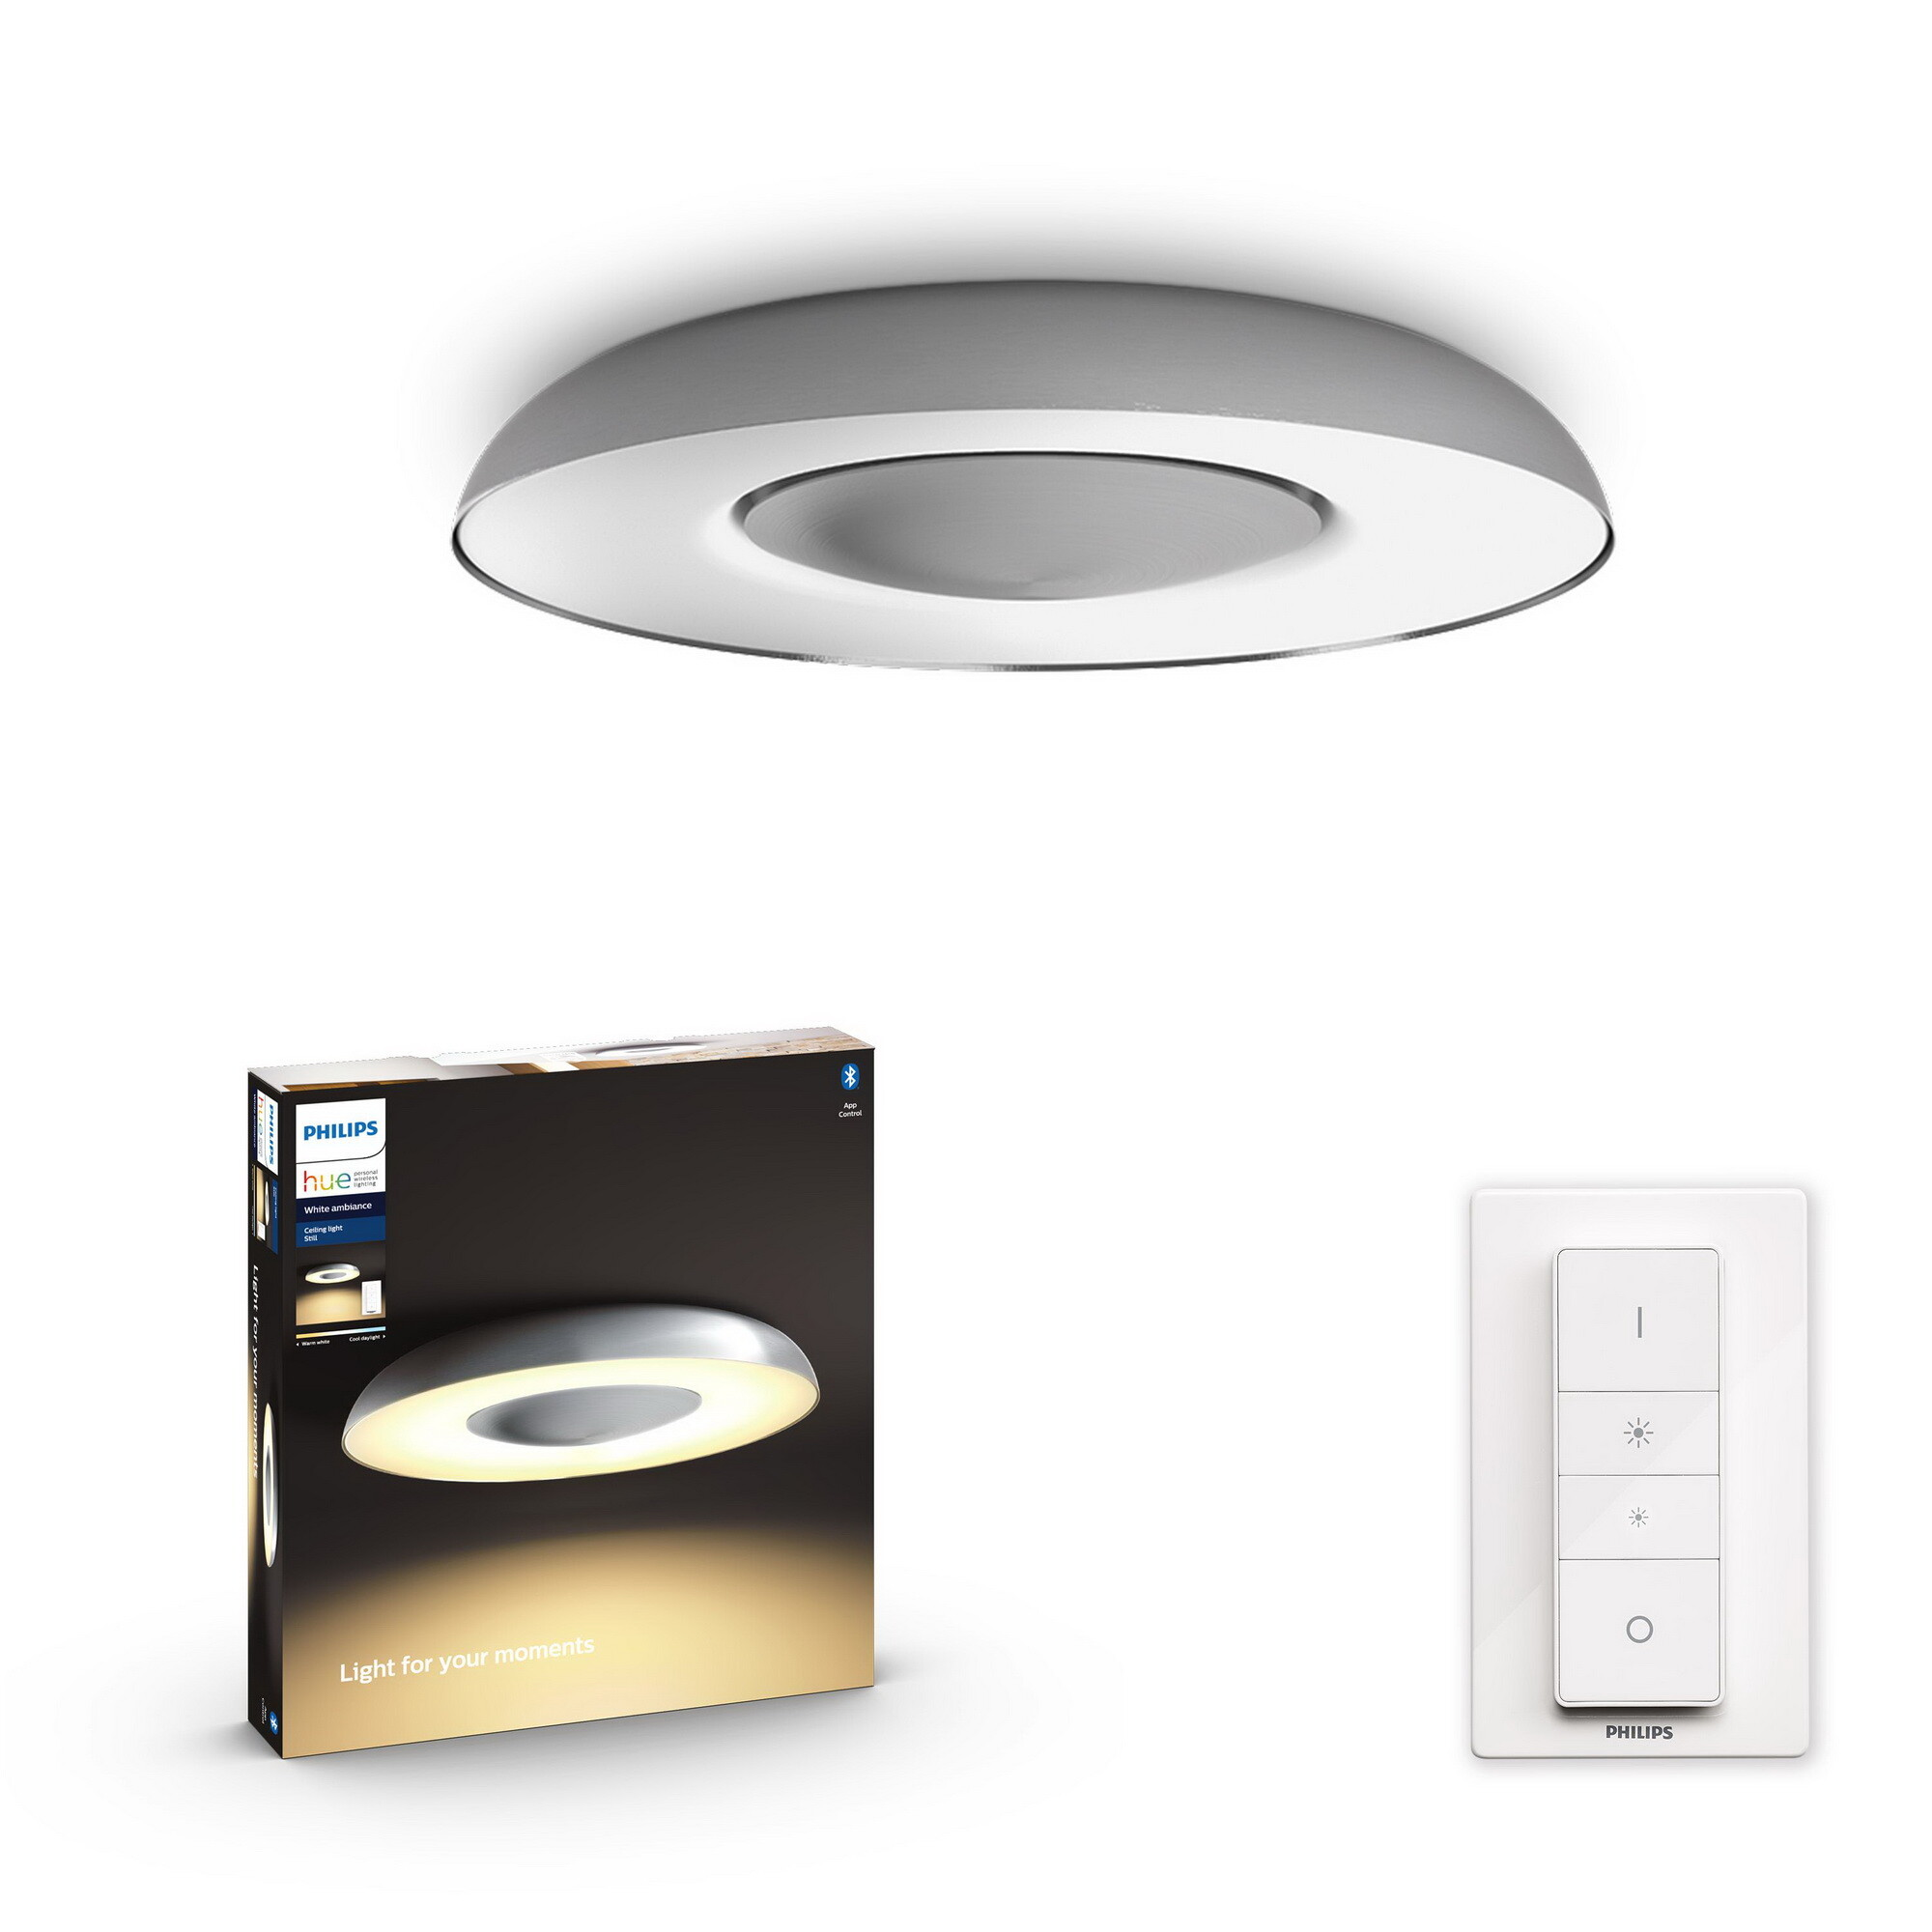 Philips HUE STILL Plafondlamp LED 1x32W/2400lm Zilver